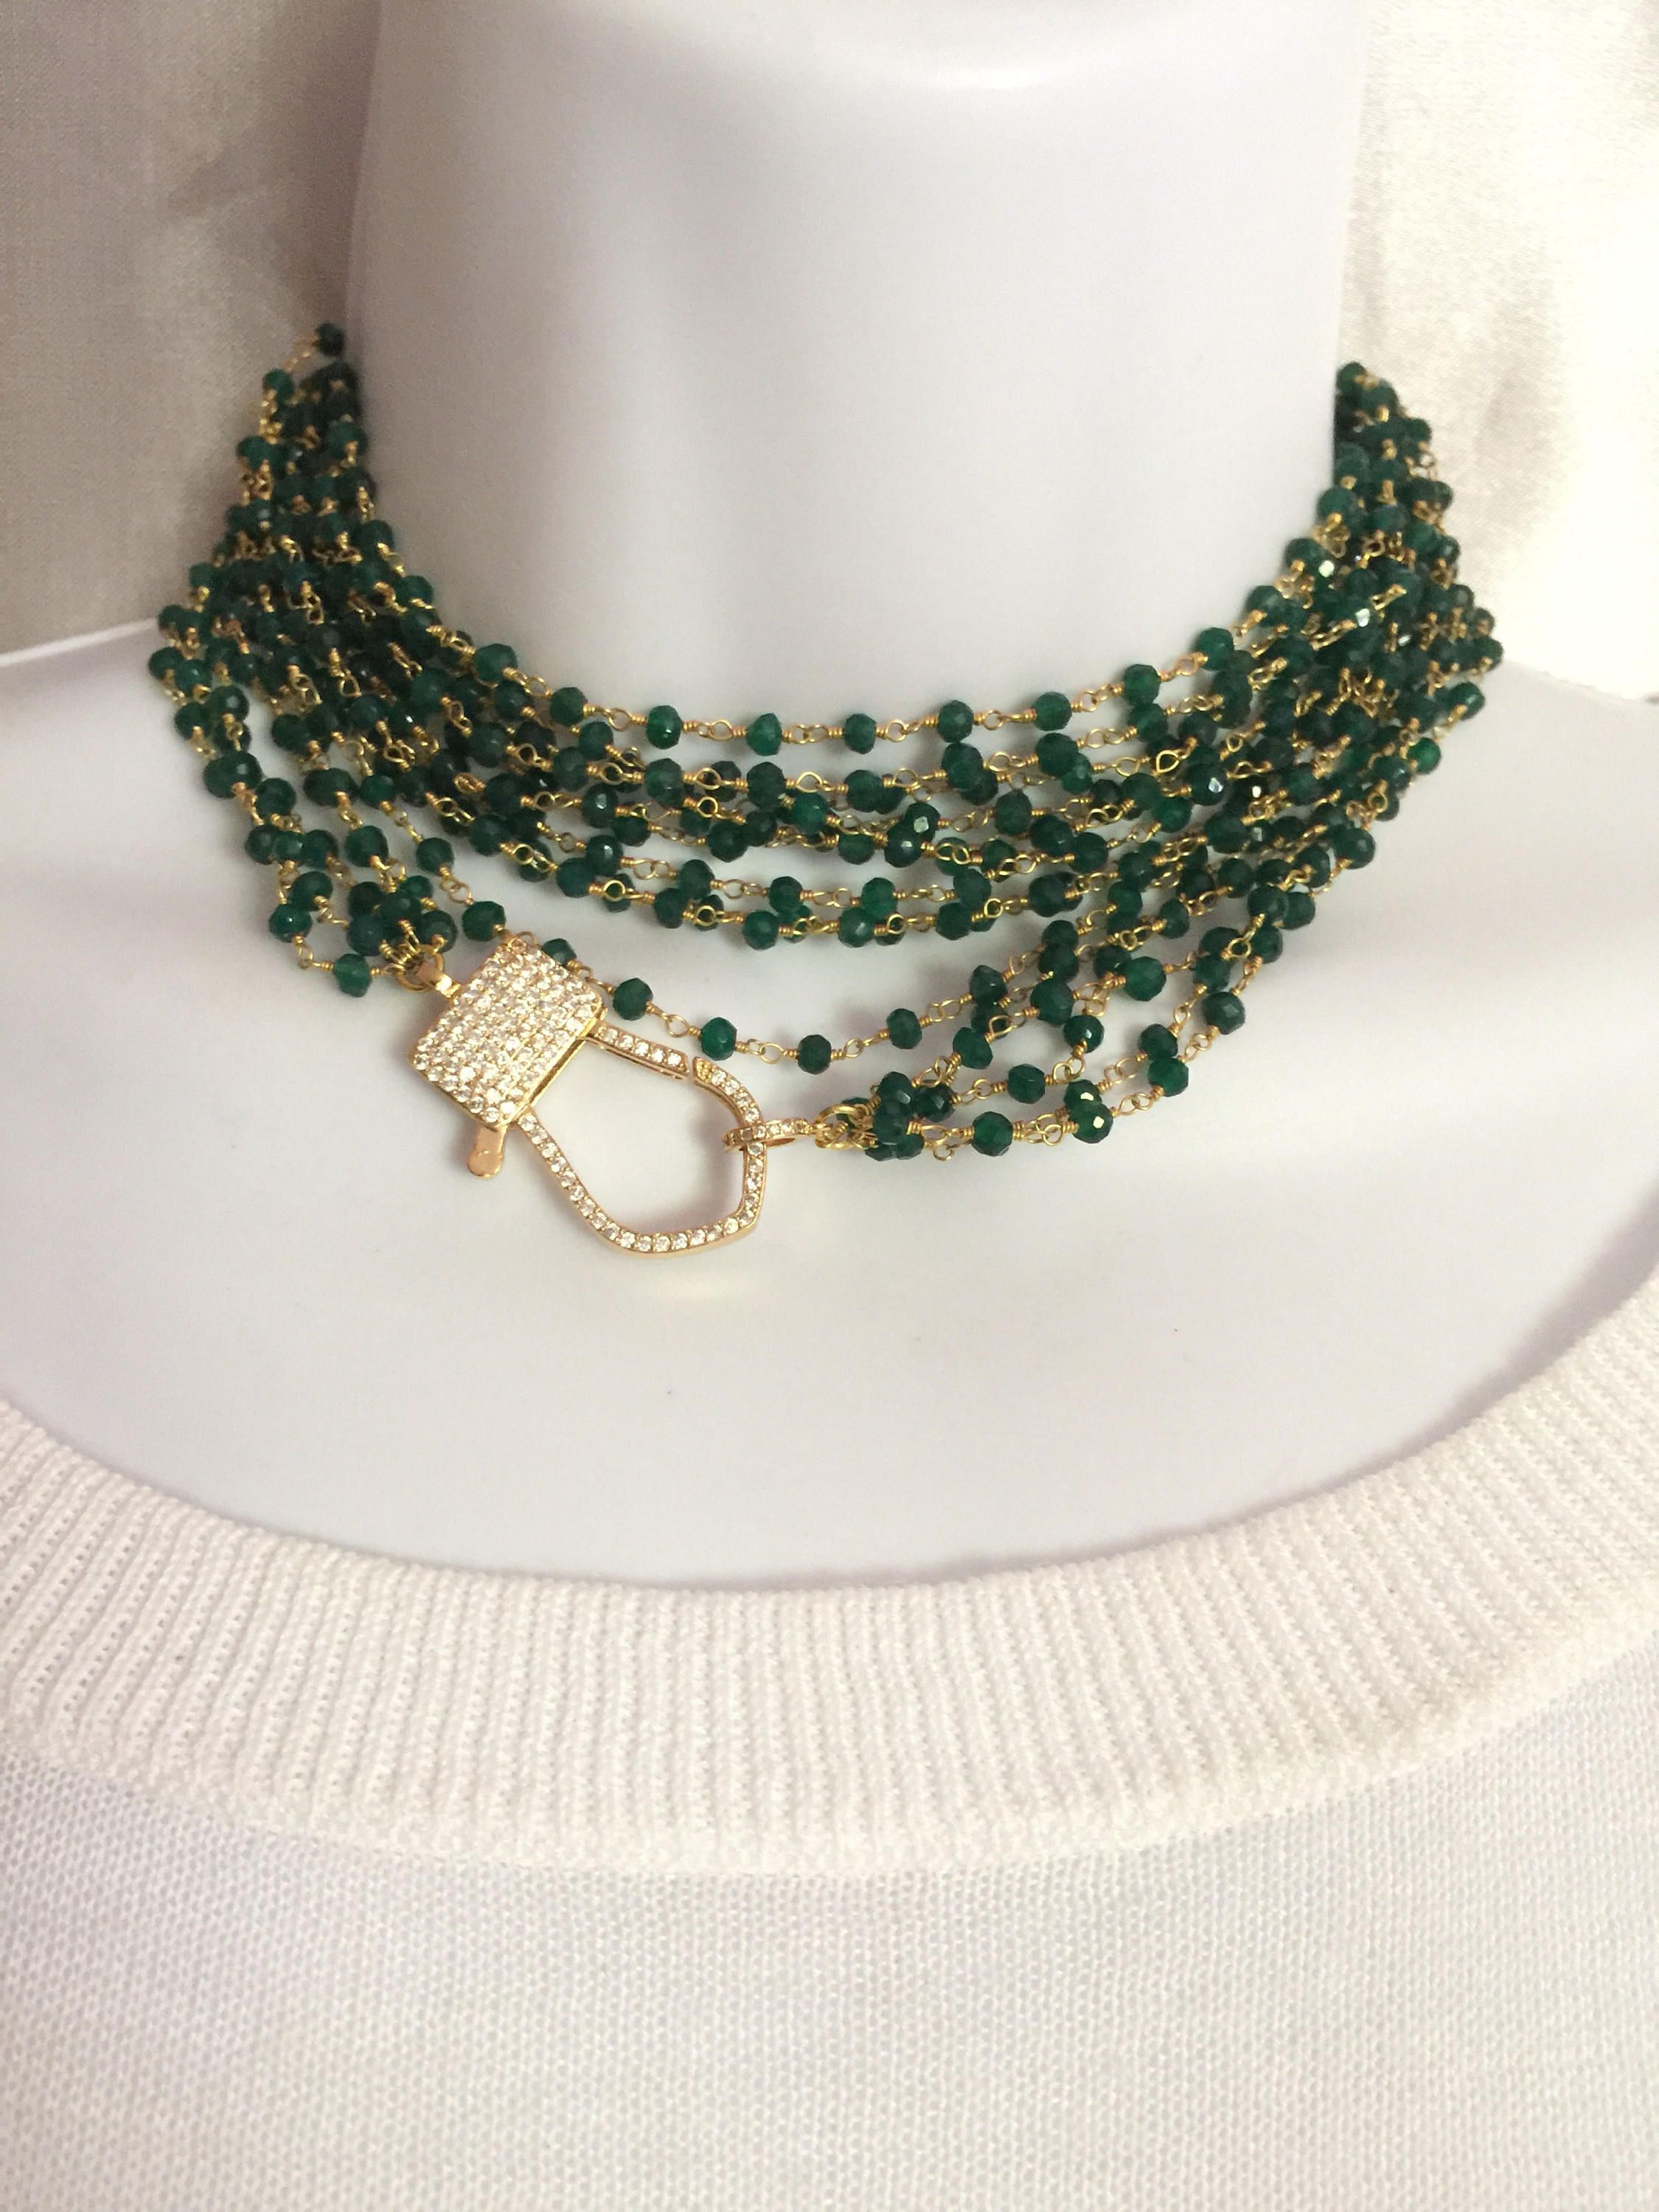 jacqueline love products jacquelineashworth emerald onyx green patience collections ashworth necklace jewellery inspiration gold briolette